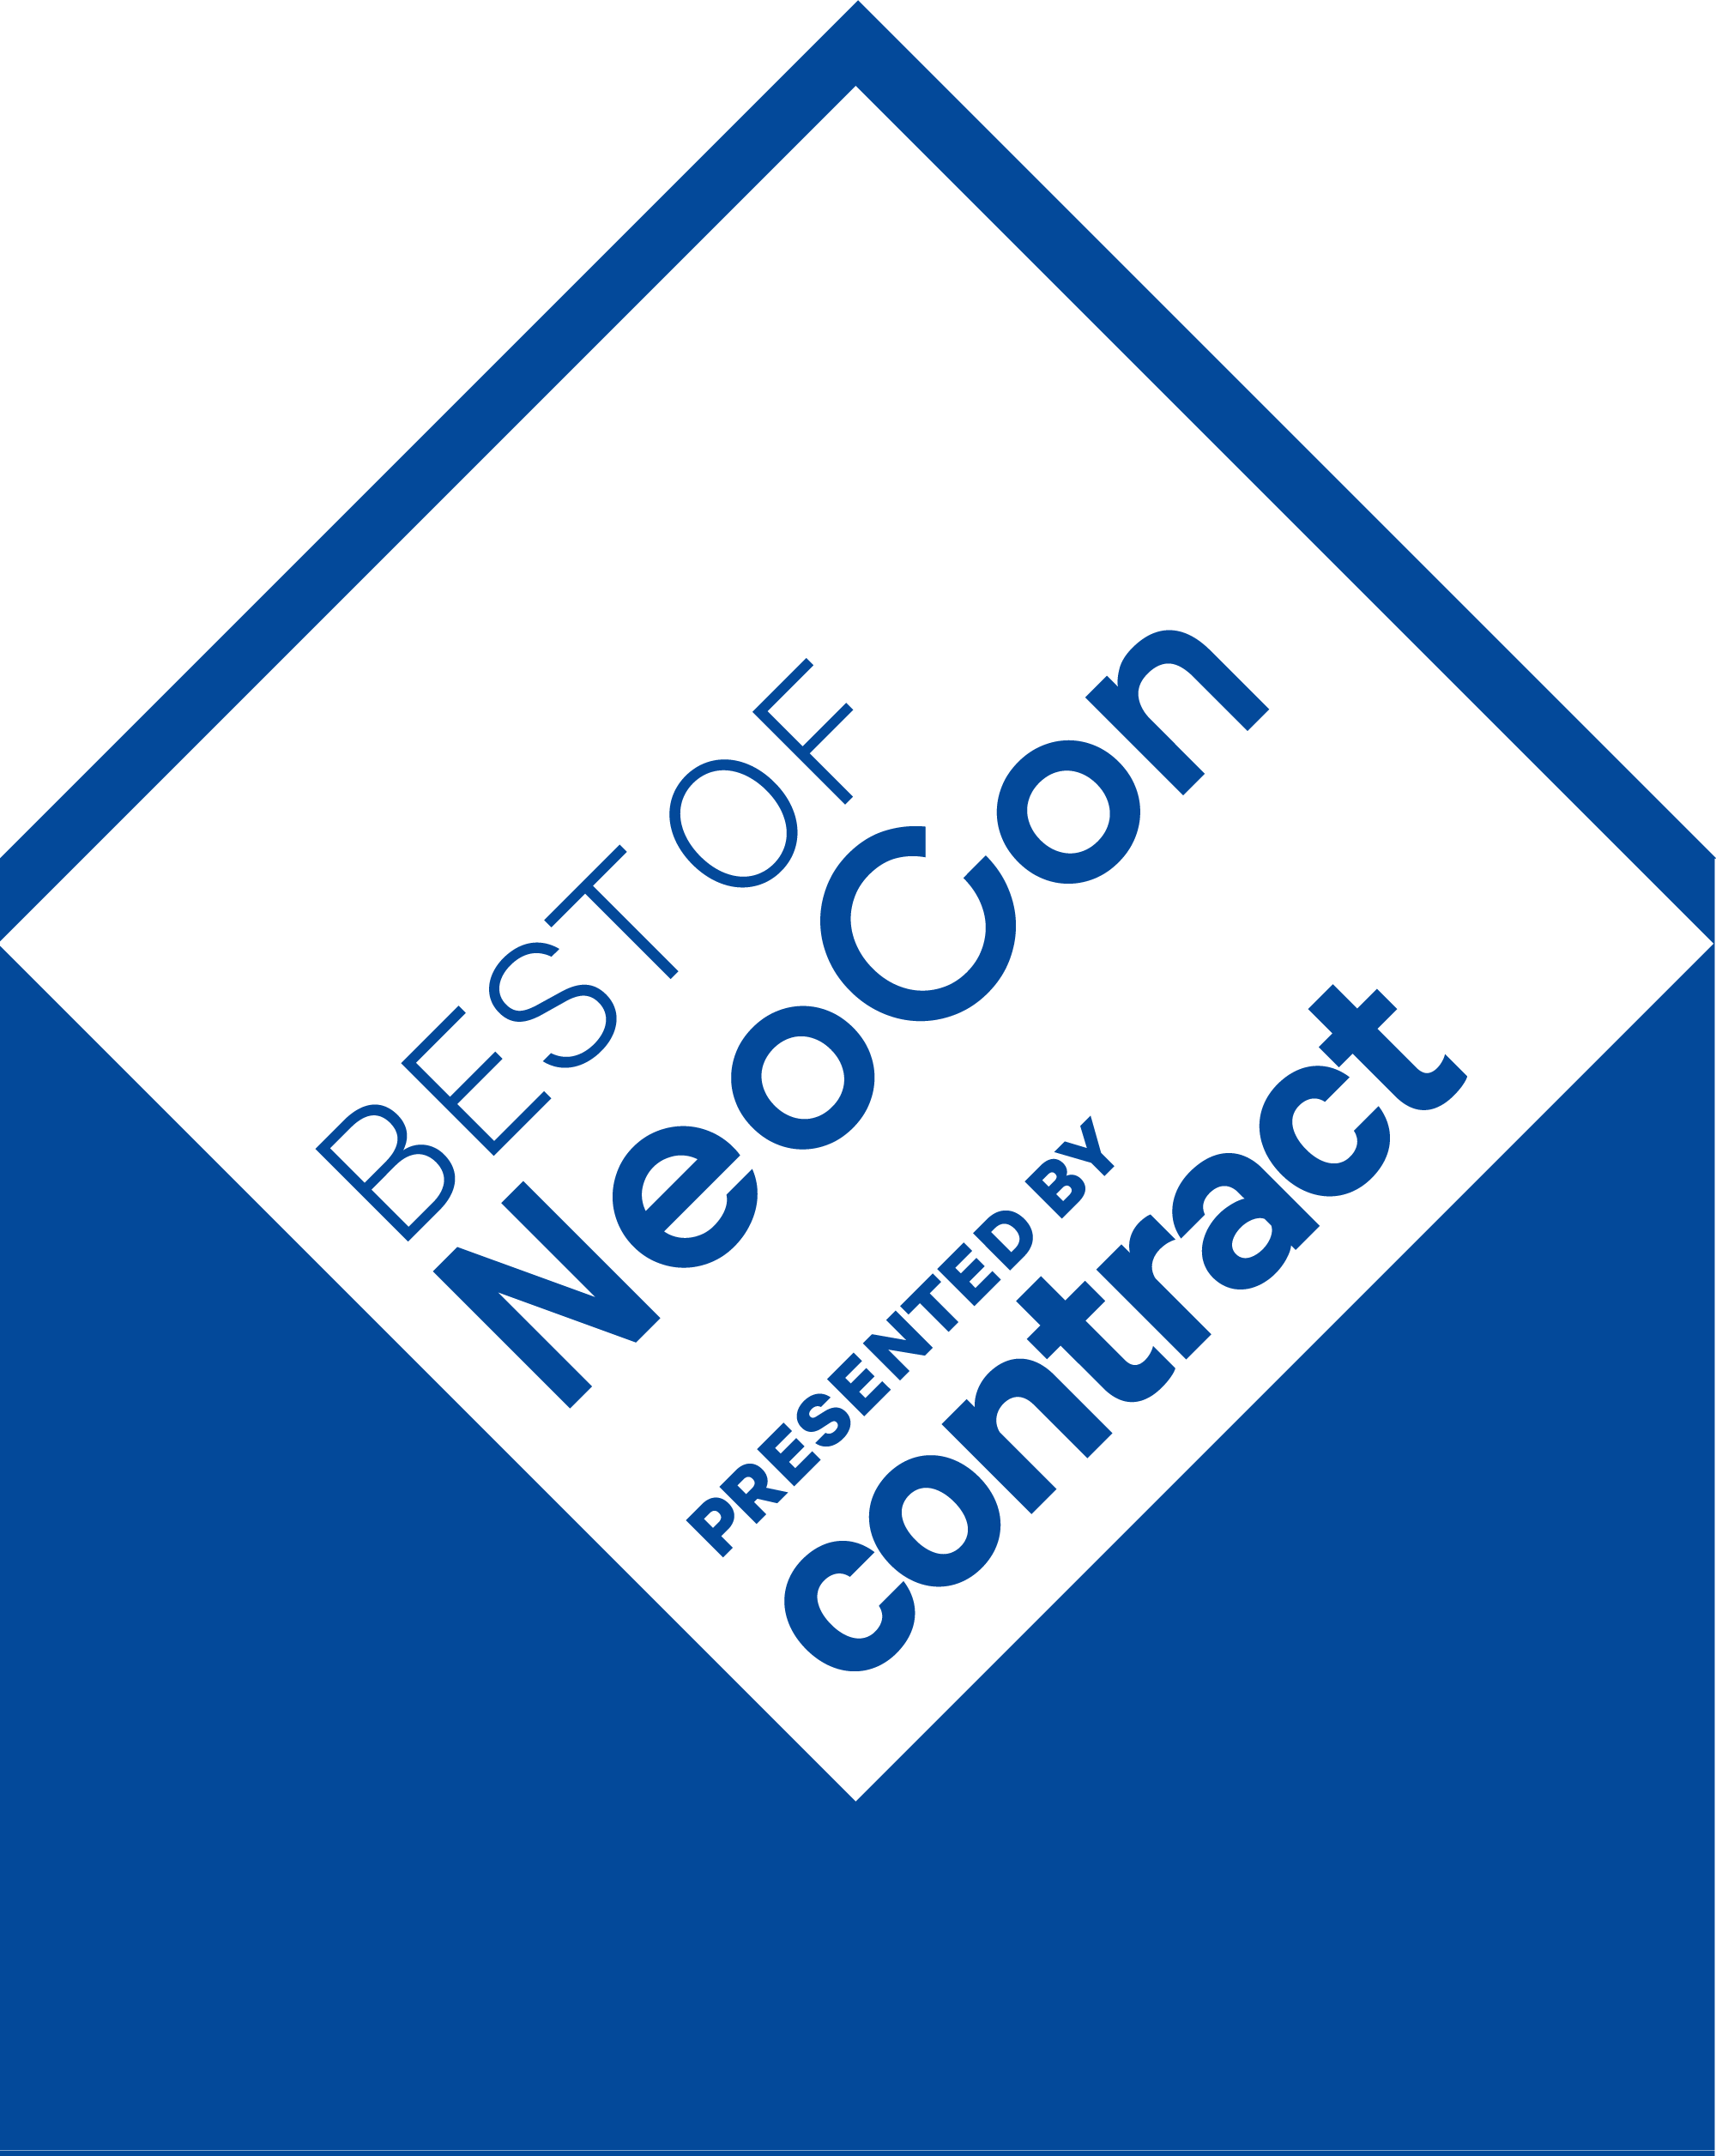 Best of NeoCon 2019 award logo